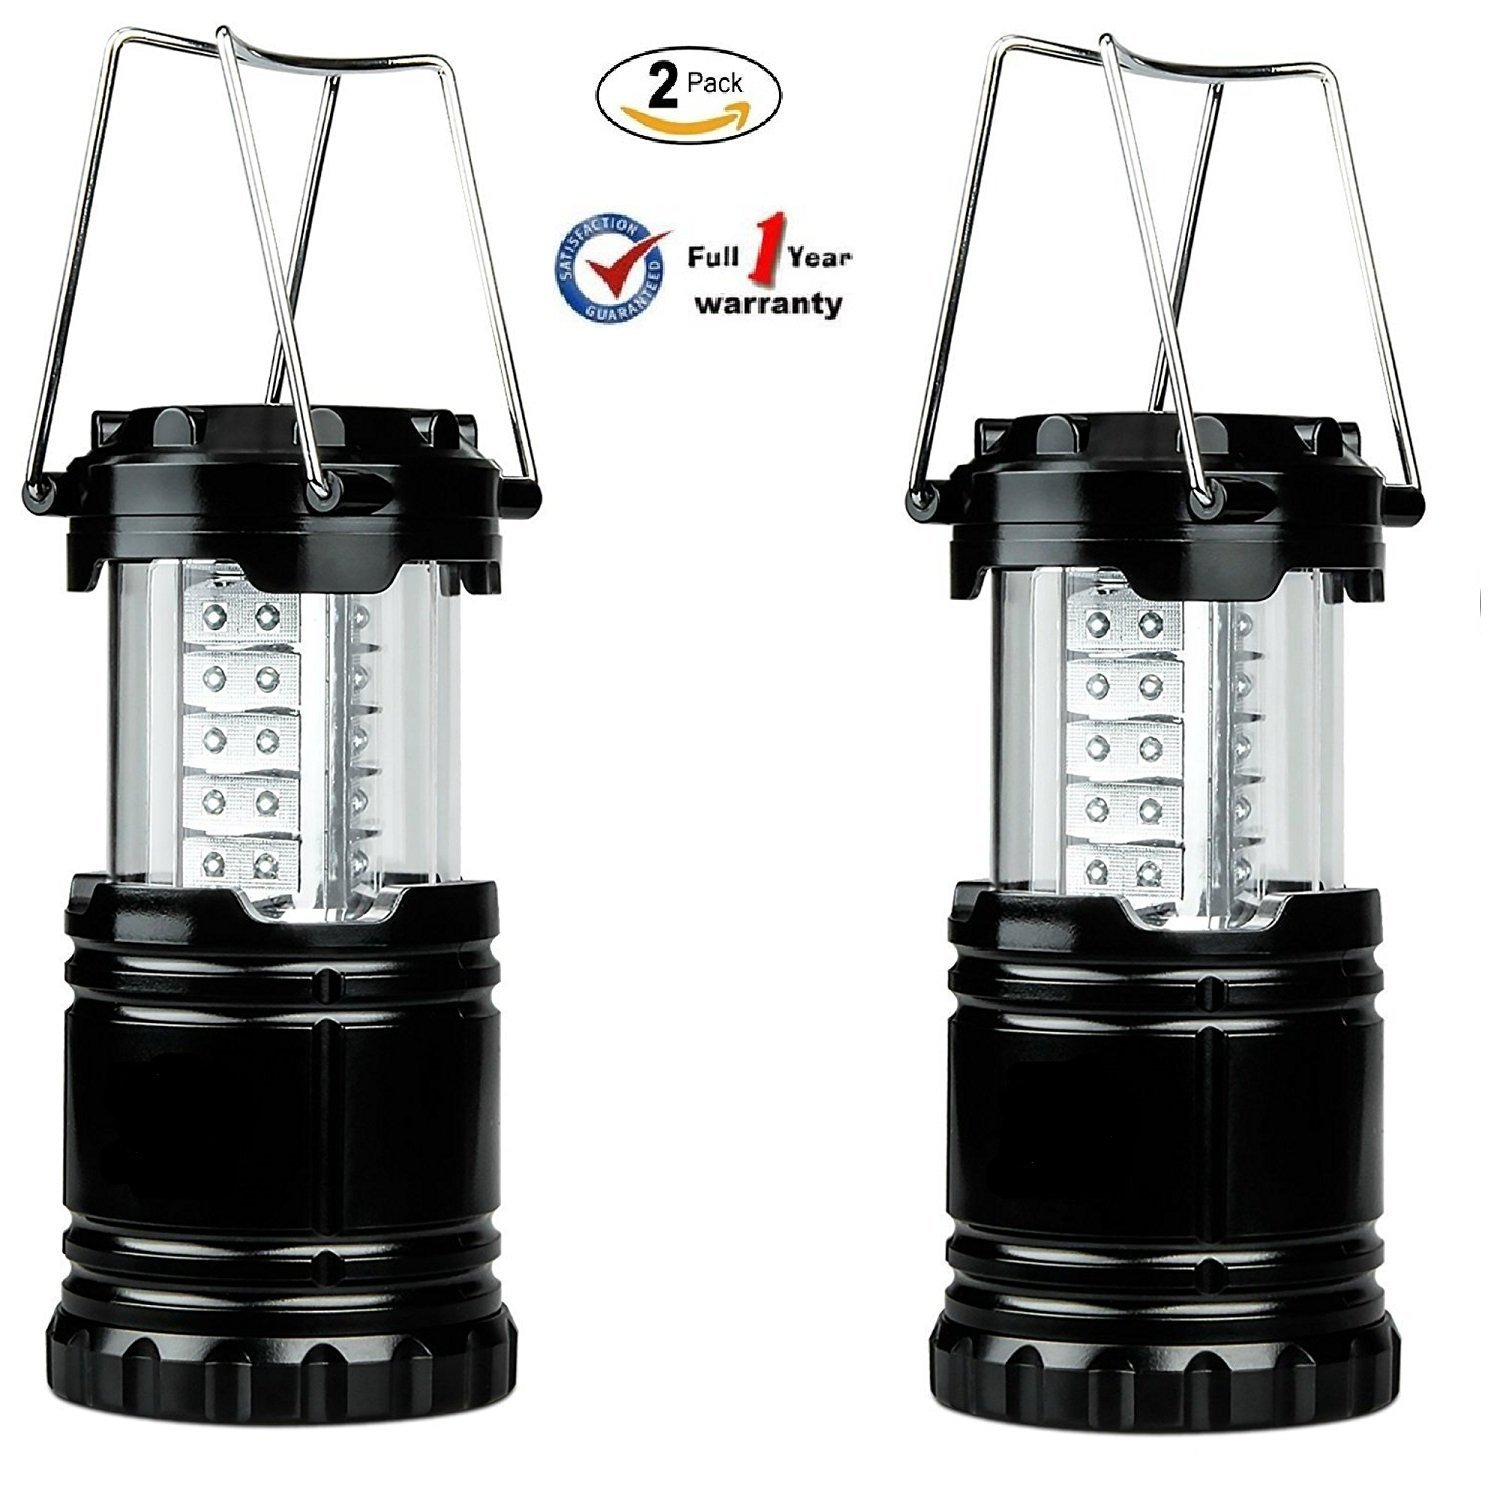 Ultra Bright LED Camping Light, Outdoor Waterproof Flashlight Hiking Light, Portable Collapsible Portable Outdoor LED Camping Lantern (2 Pack)